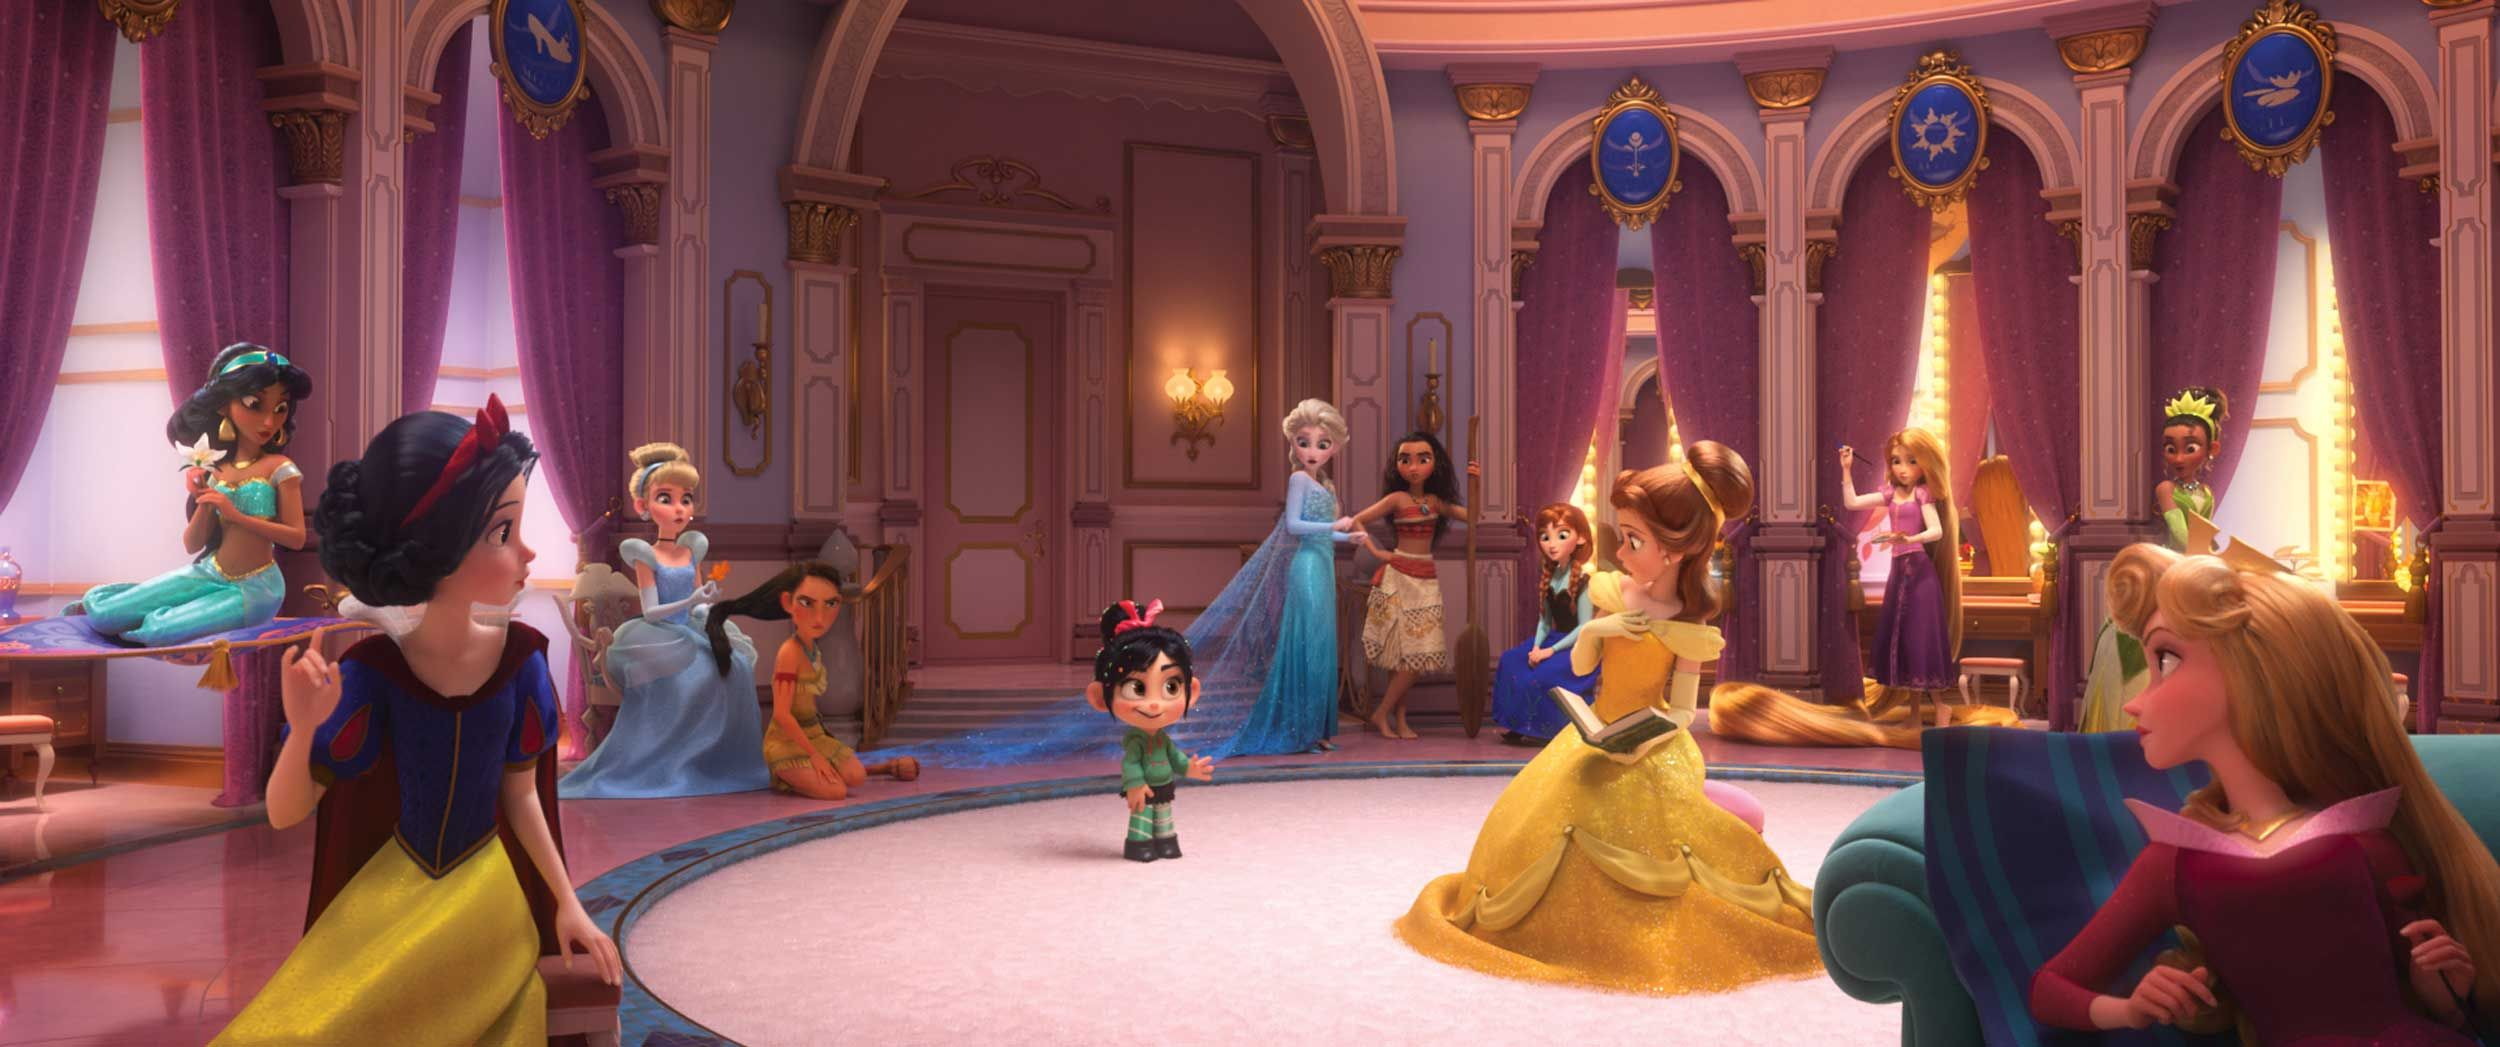 Disney Is Considering A Princesses Spin Off Following Ralph Breaks The Internet